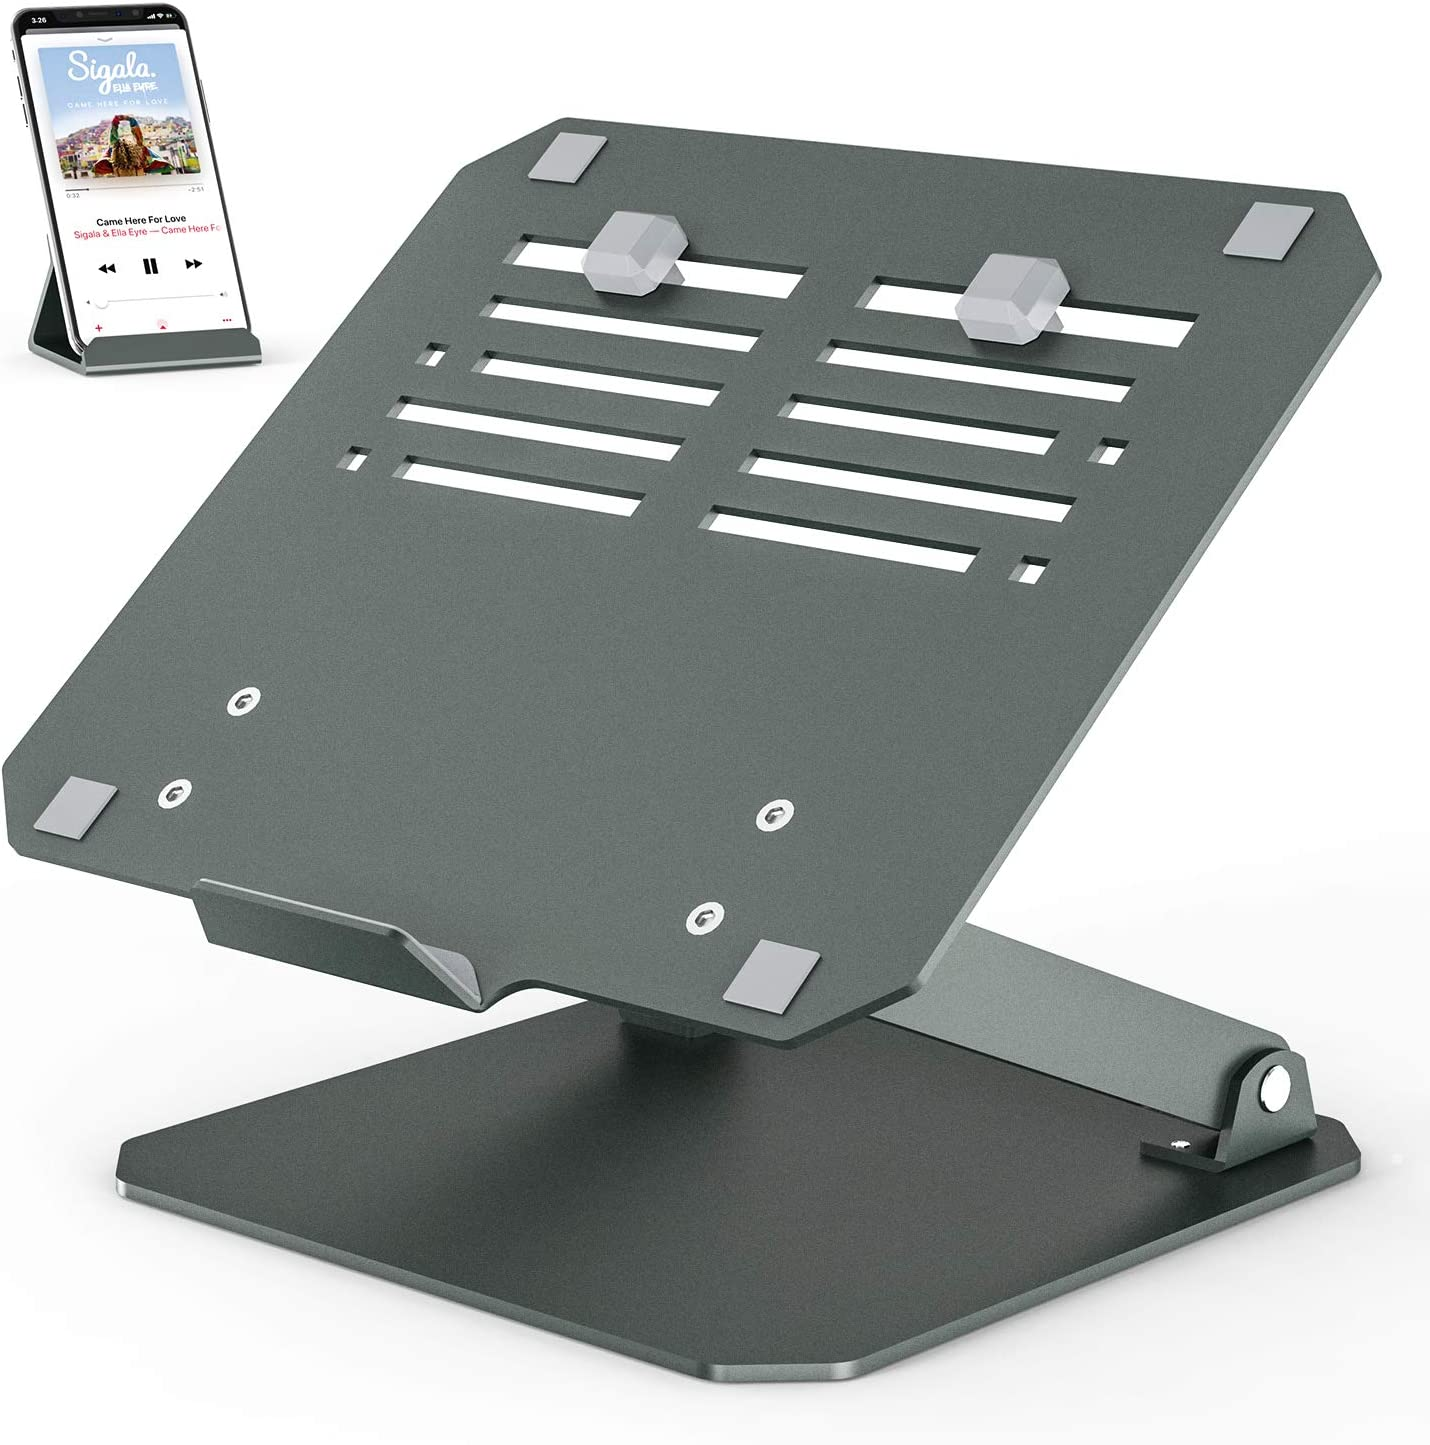 Heightened Laptop Stand, Klearlook Adjustable Laptop Riser with Heat-Vent to Elevate Laptop, Aluminum Laptop Holder with Extra Phone Holder Desktop Stand Holder for All Laptops and Tablets